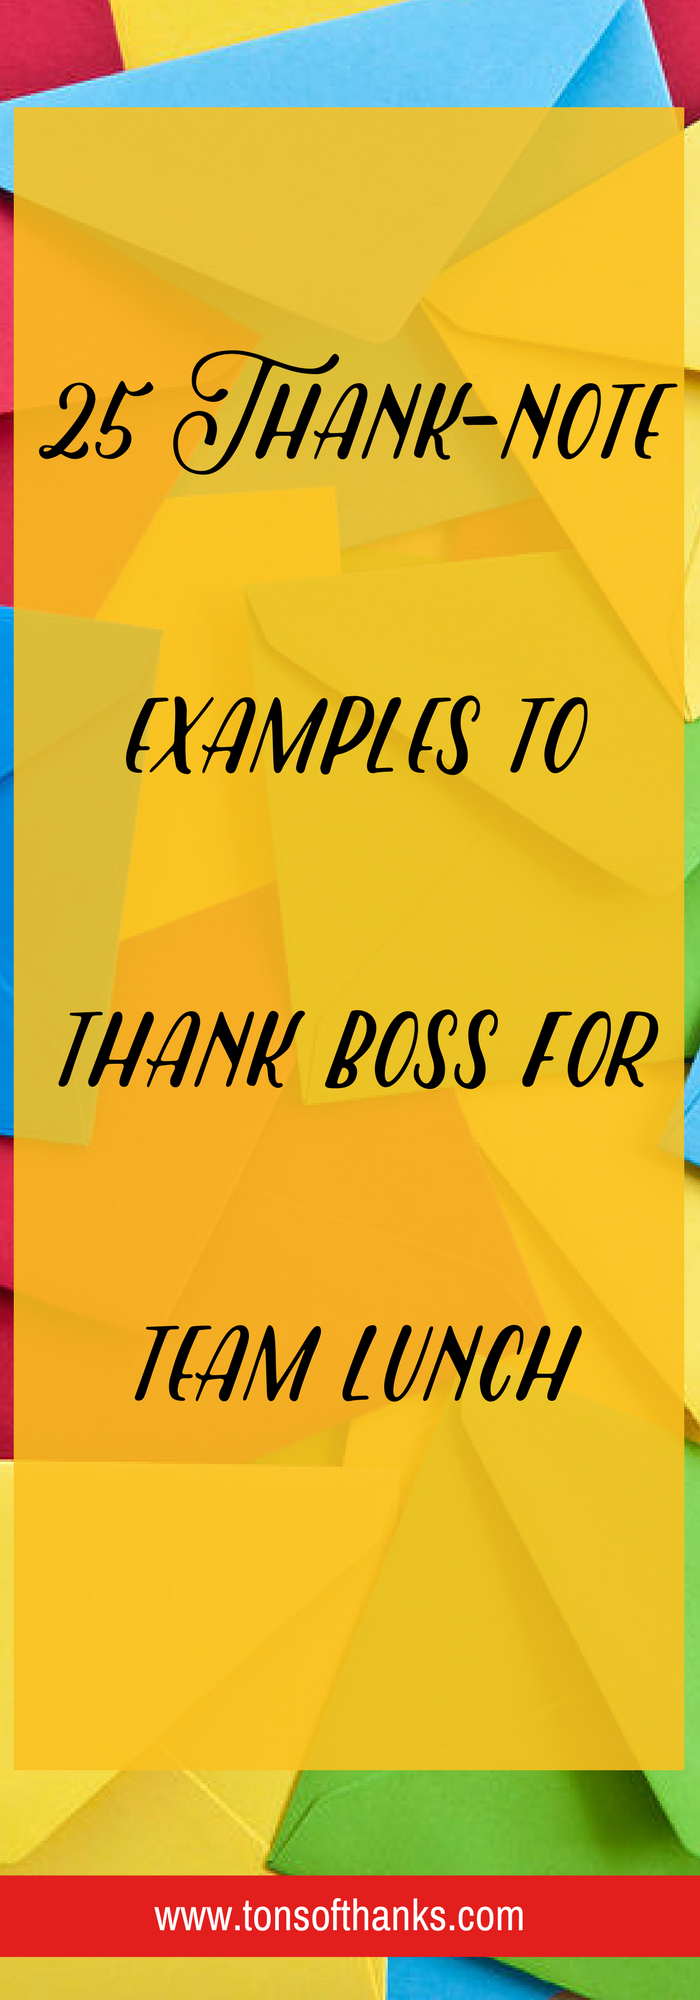 ThankNote Examples To Thank Boss For Team Lunch  Lunches And Note